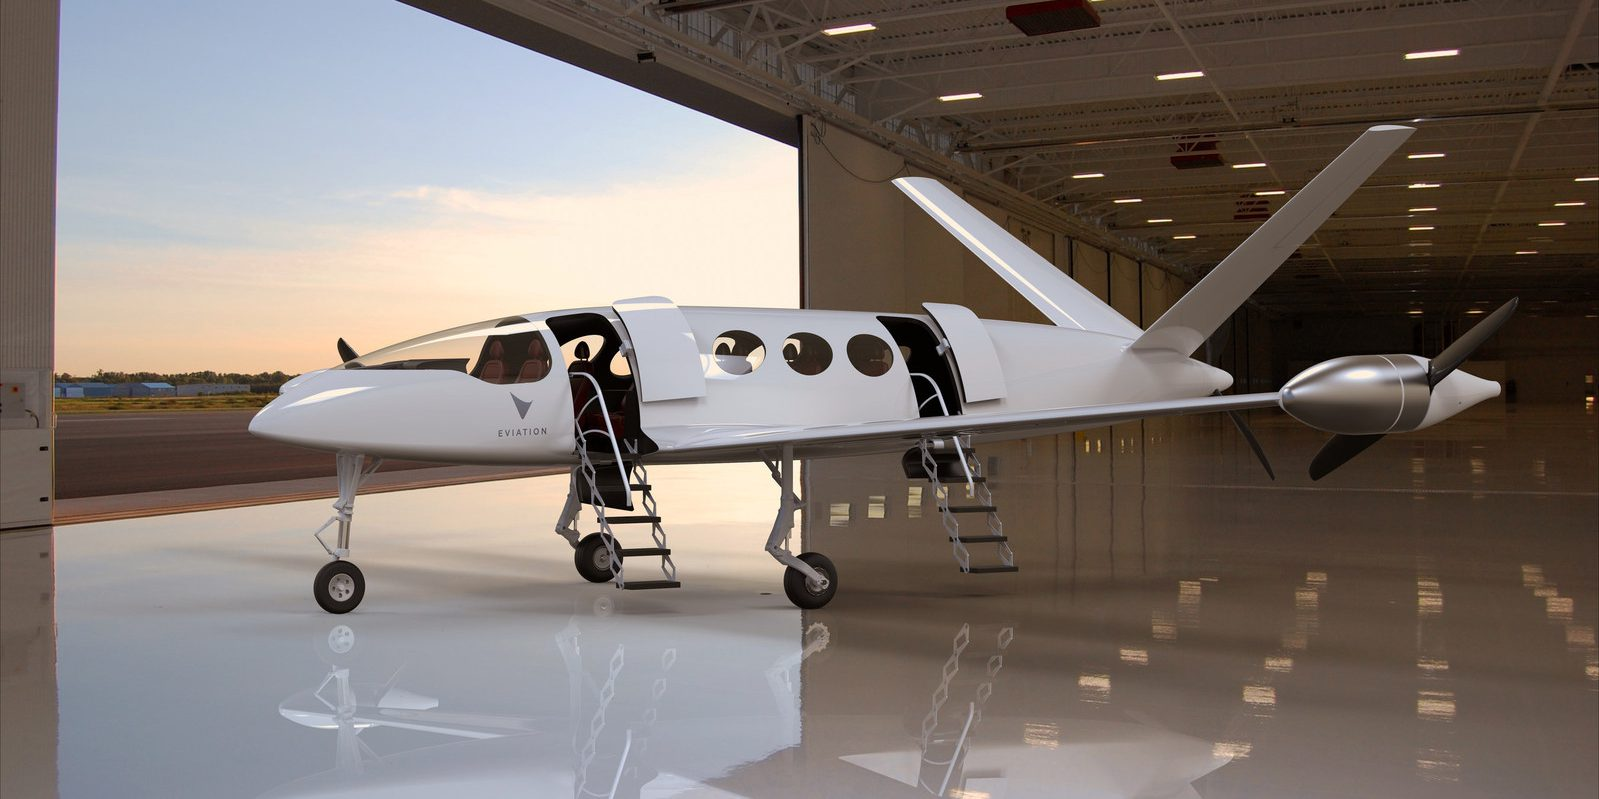 Tesla battery researchers mention enabling electric aircraft with new batteries - Electrek